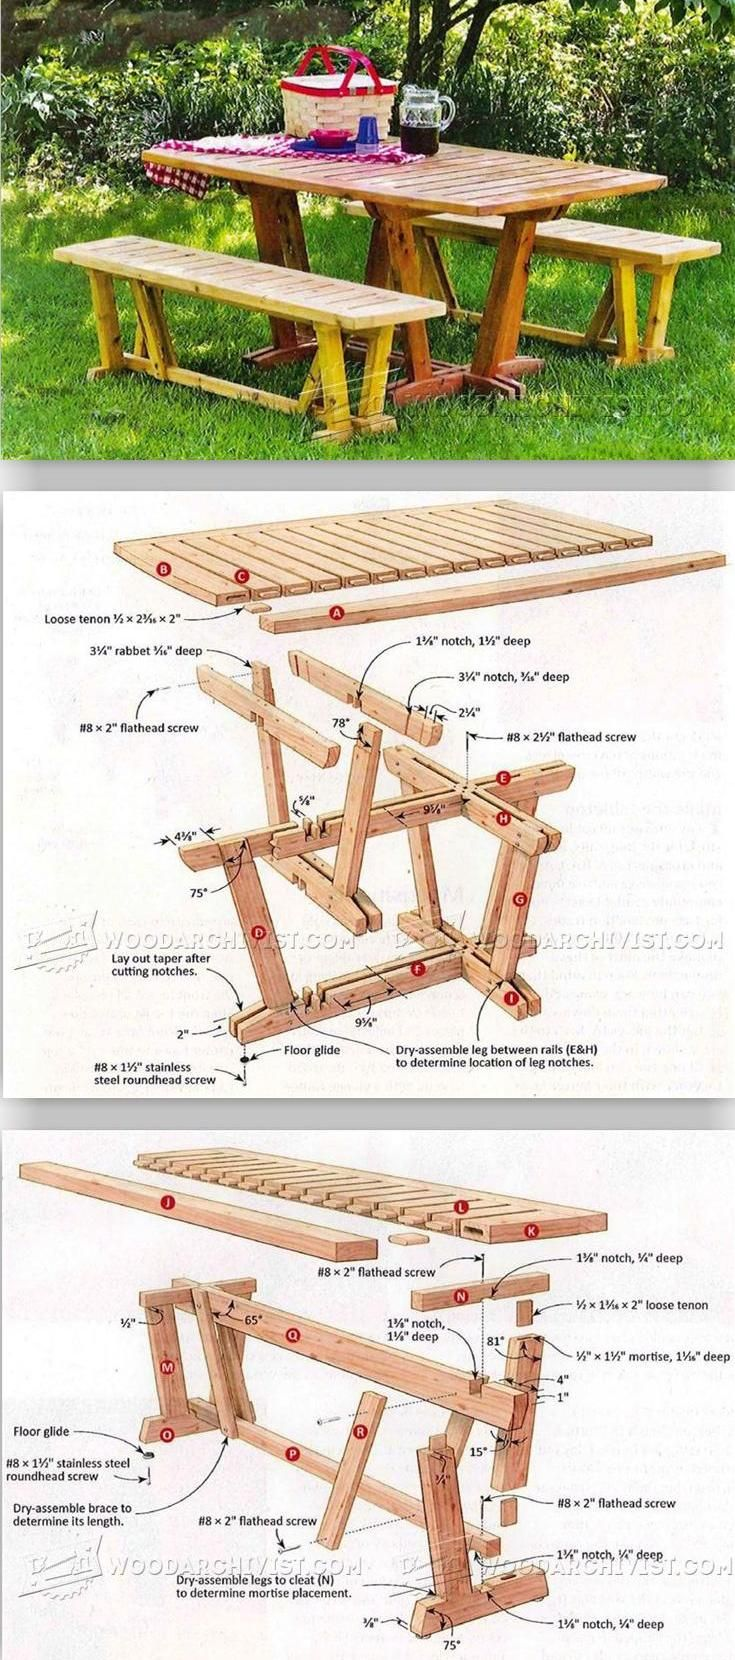 Table and Benches - Outdoor Furniture Plans & Projects | WoodArchivist.com